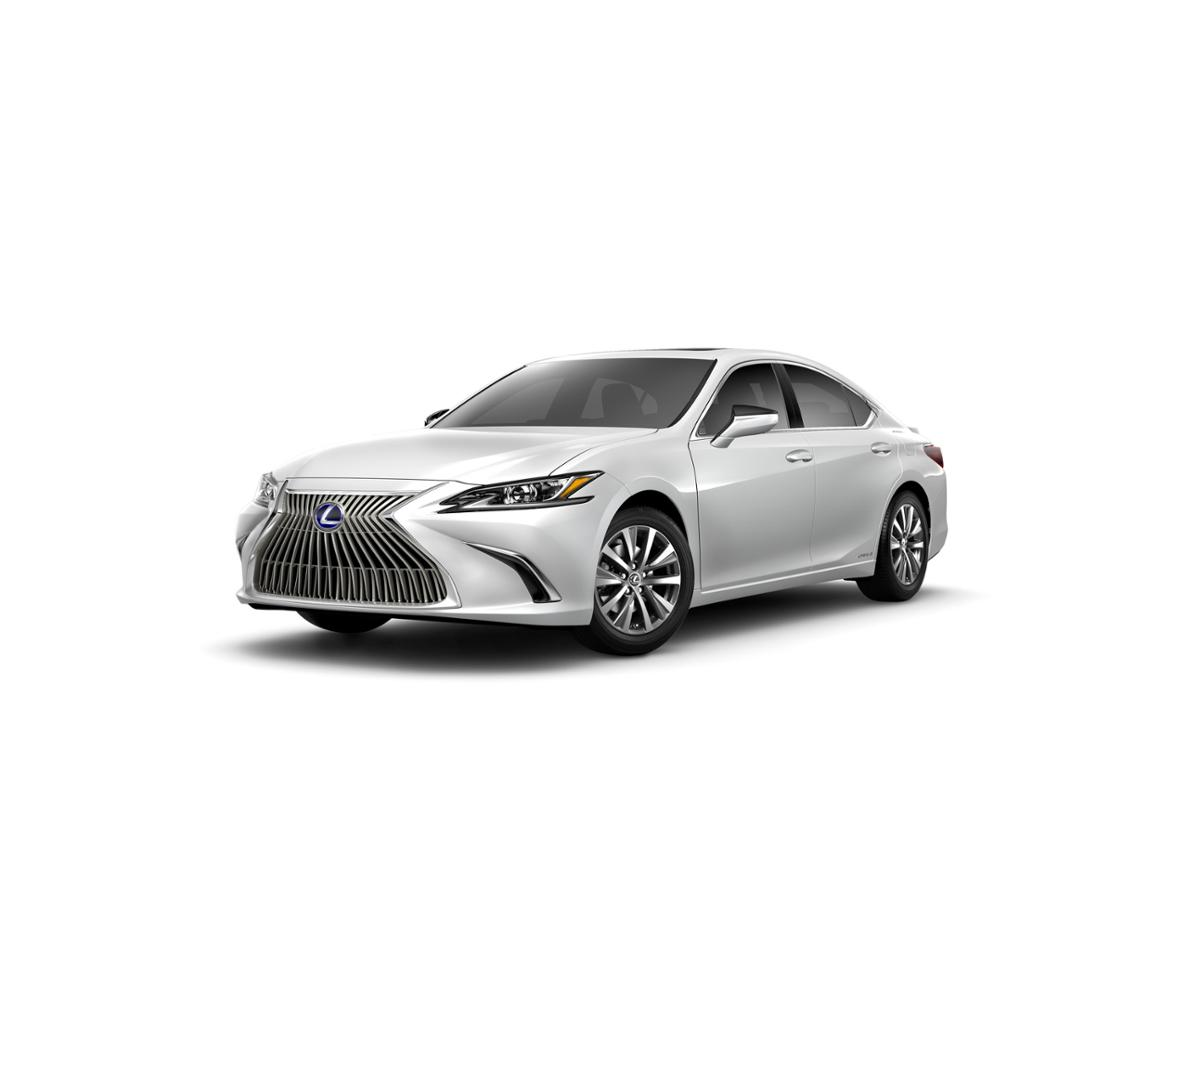 2019 Lexus ES 300h Vehicle Photo in Santa Monica, CA 90404